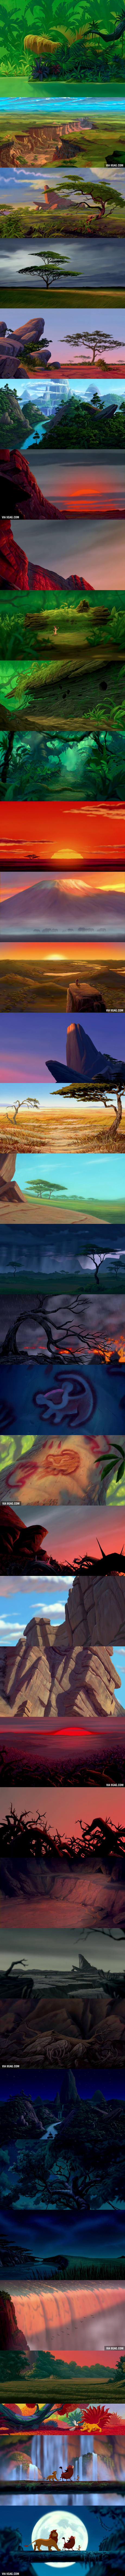 Background Art Of The Lion King 9gag